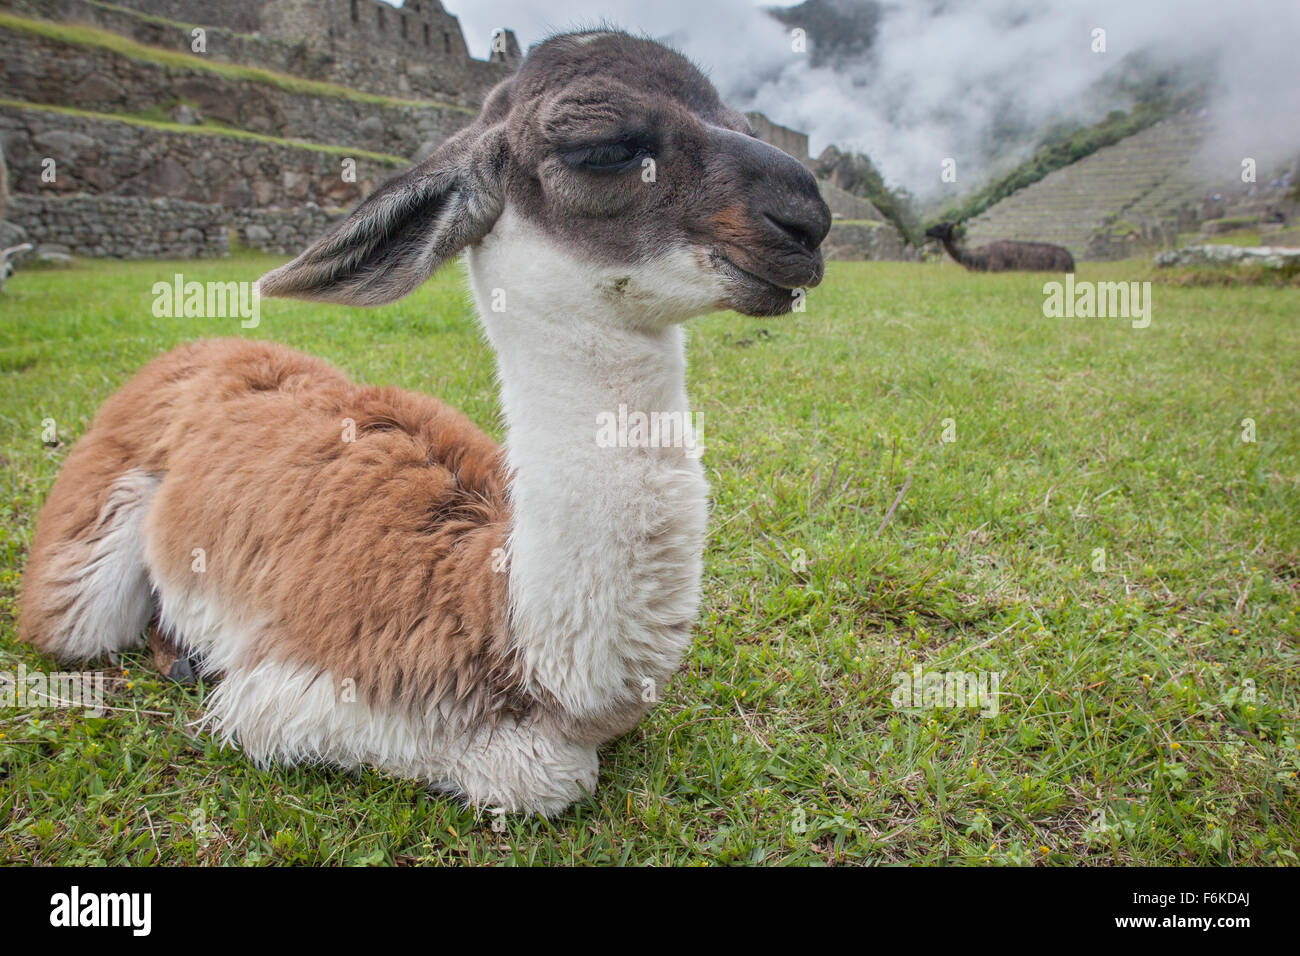 A young llama (cria) rests in front of ancient Incan ruins at Machu Picchu, Peru. - Stock Image